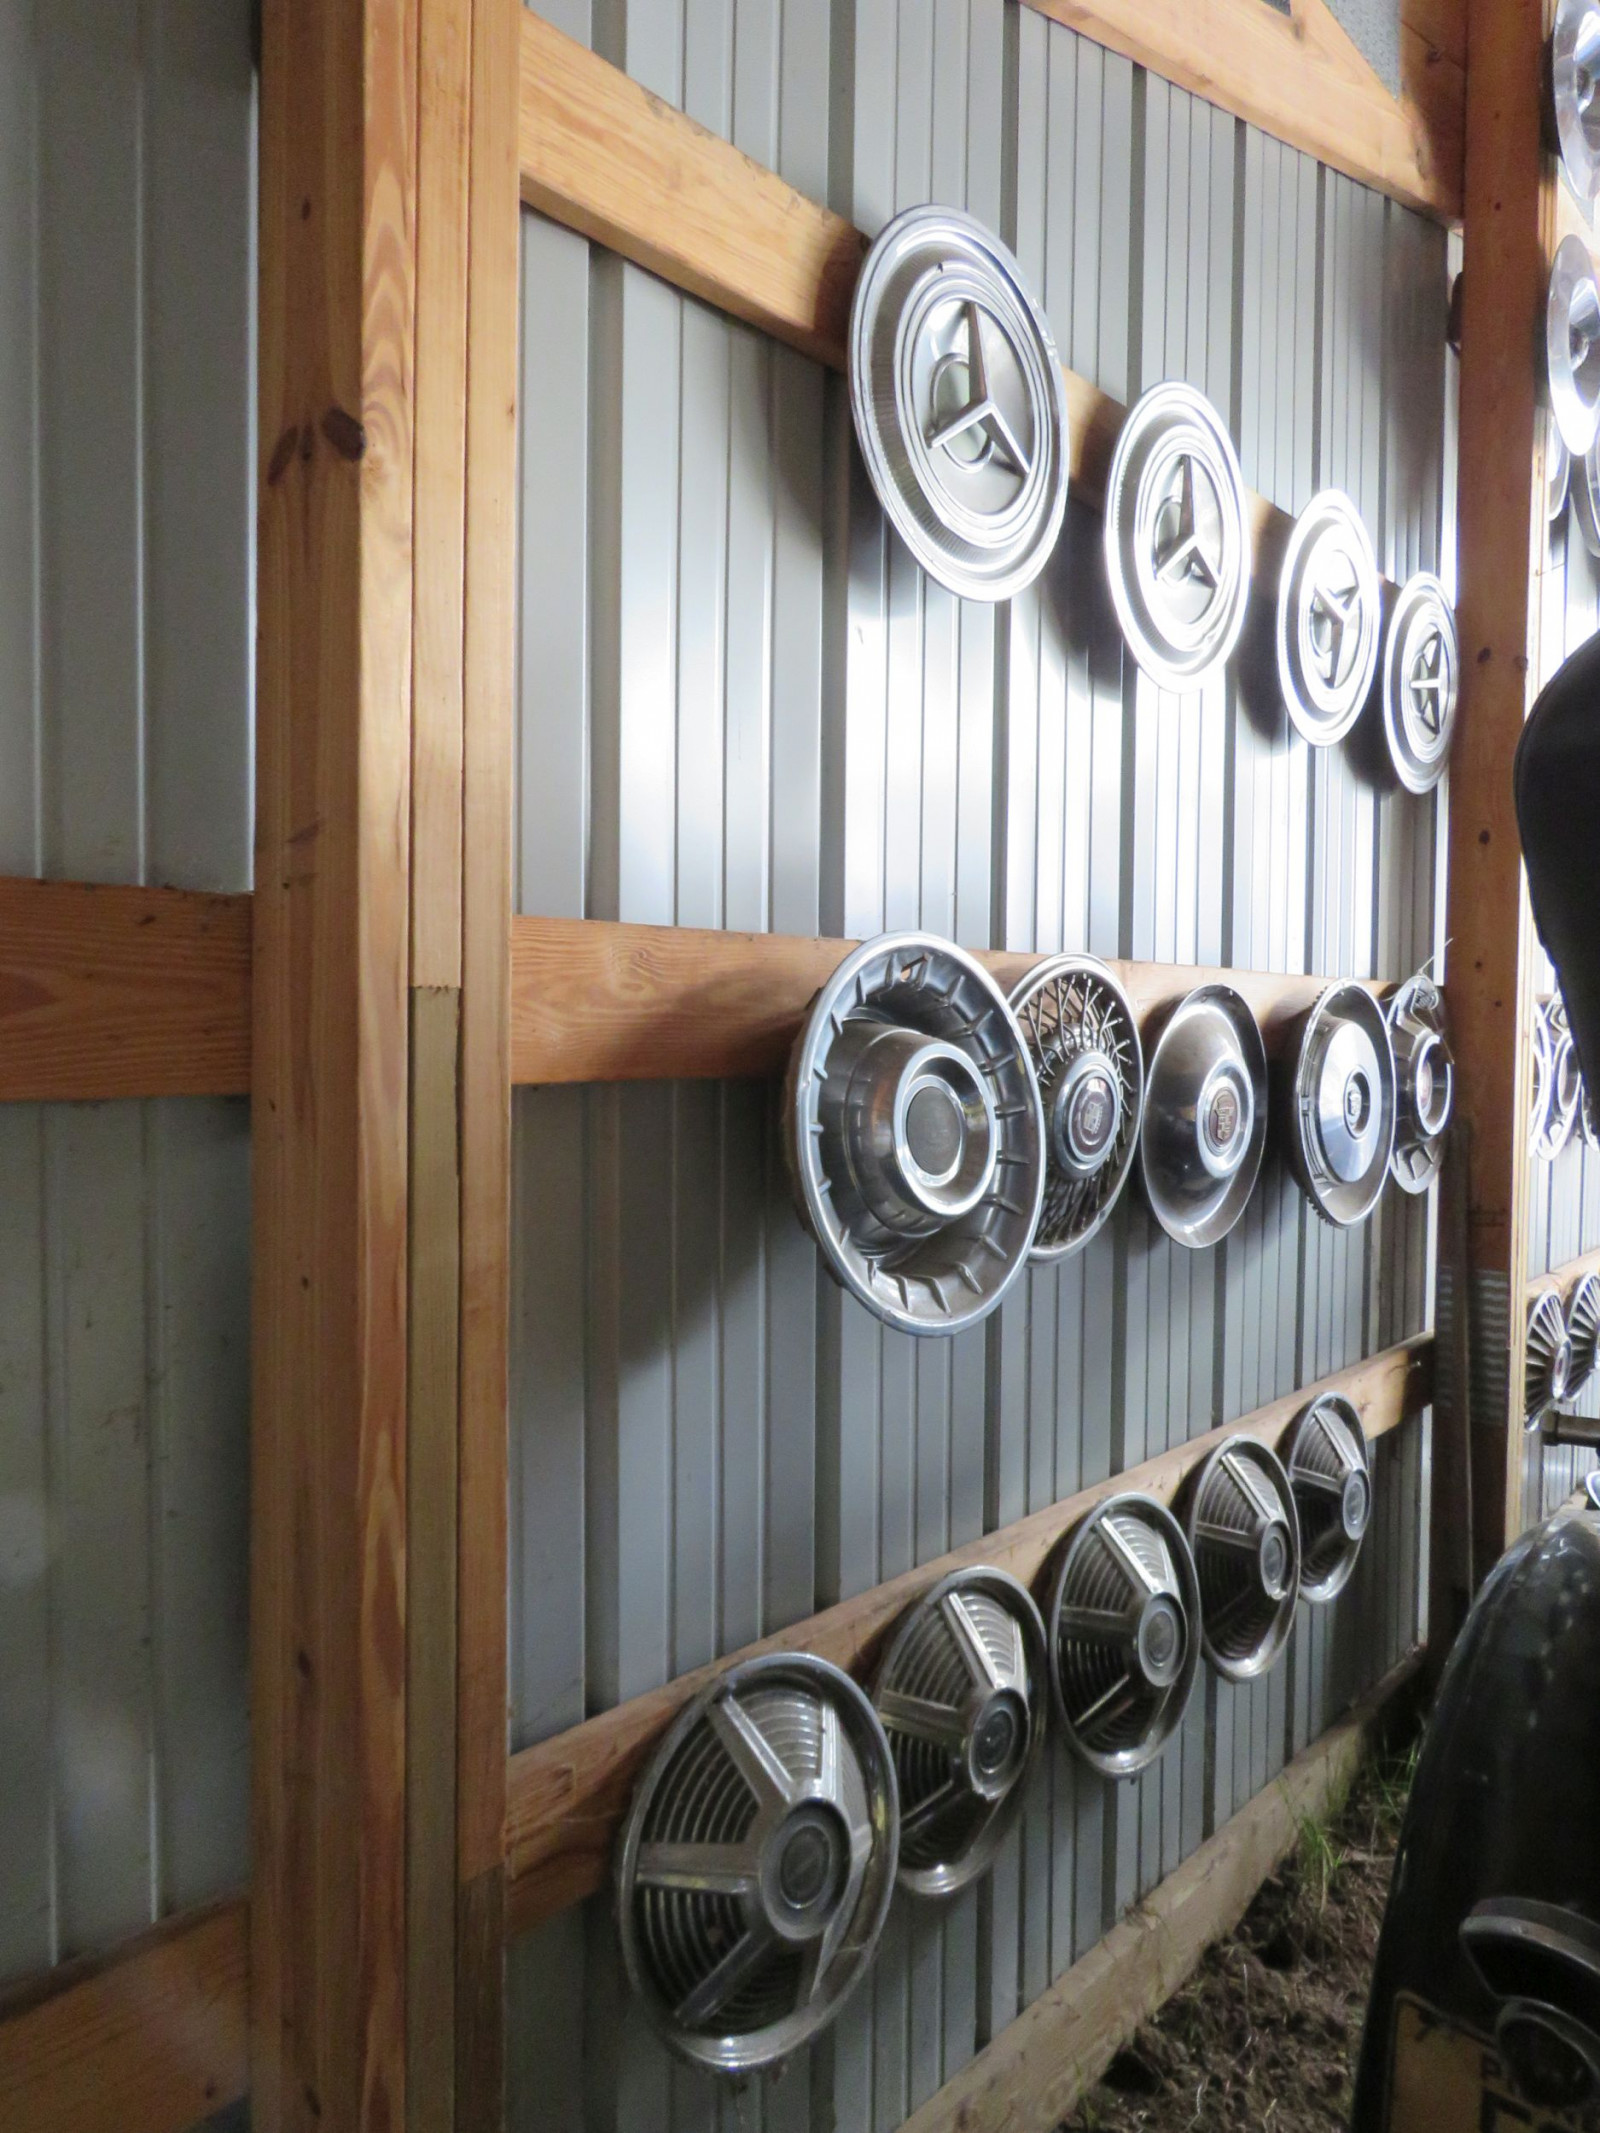 Vintage Hubcap Grouping - Image 2